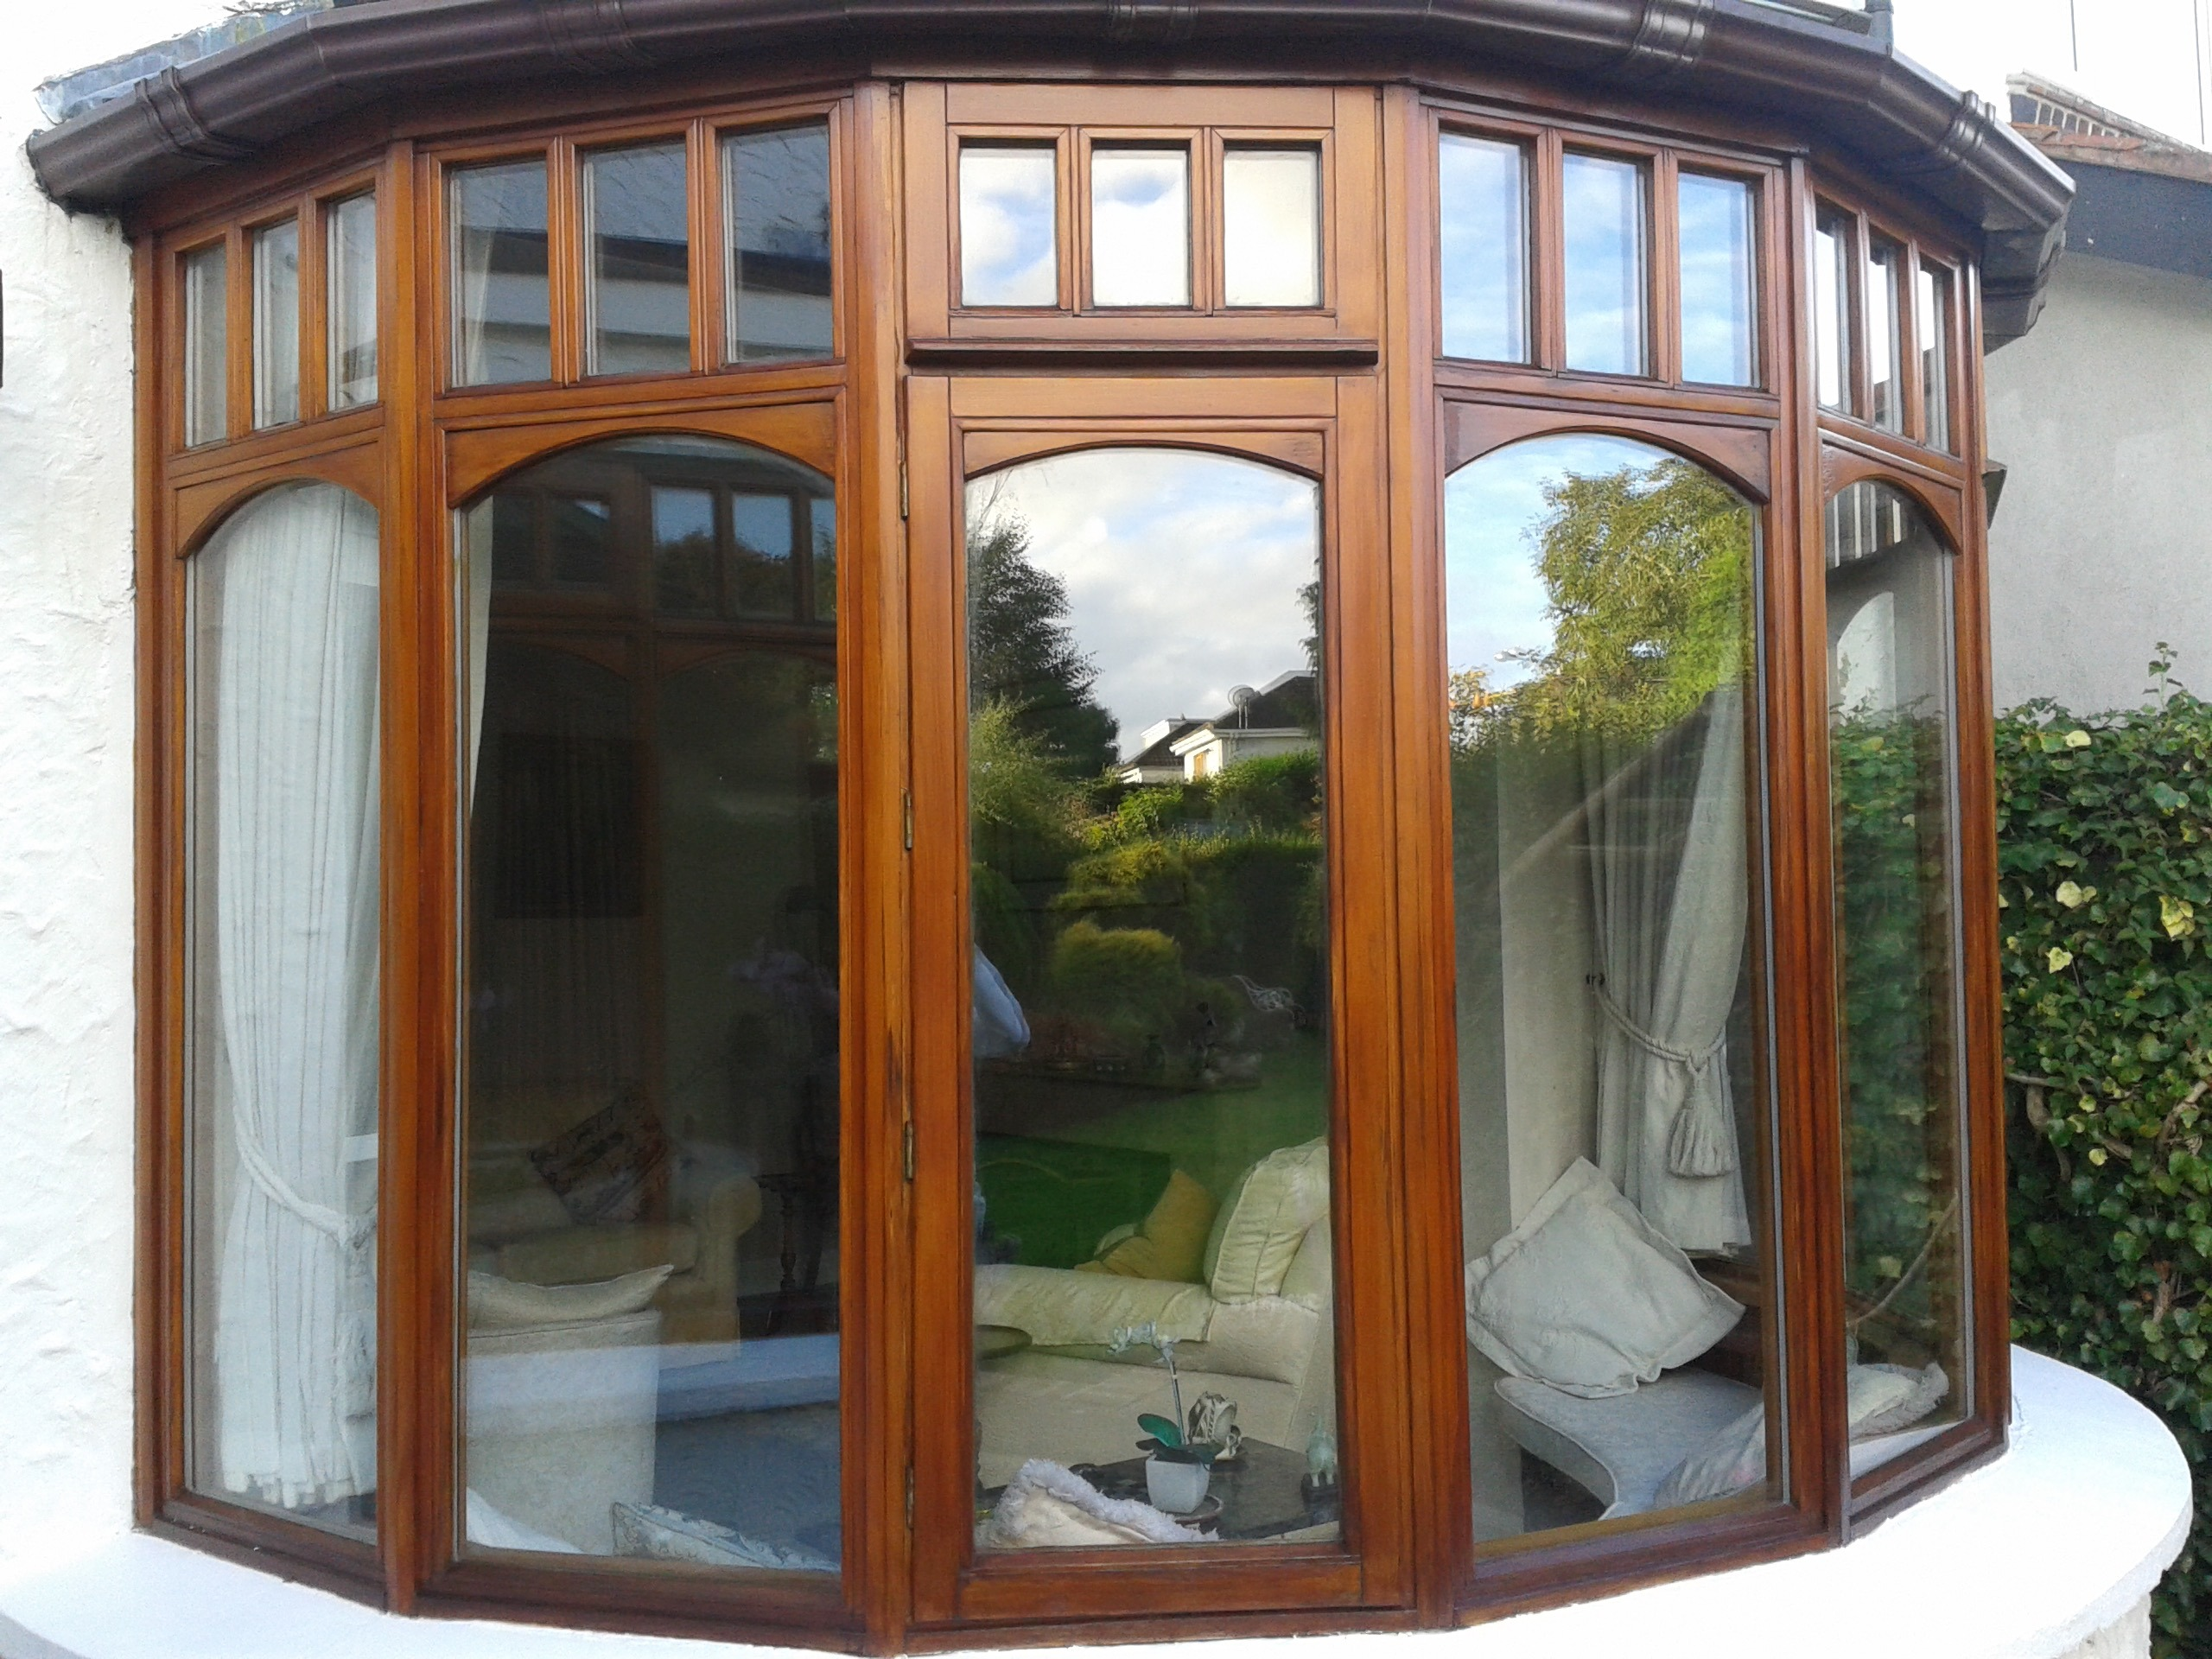 Window restoration and window painting by Impressions painting and decorating in Dublin